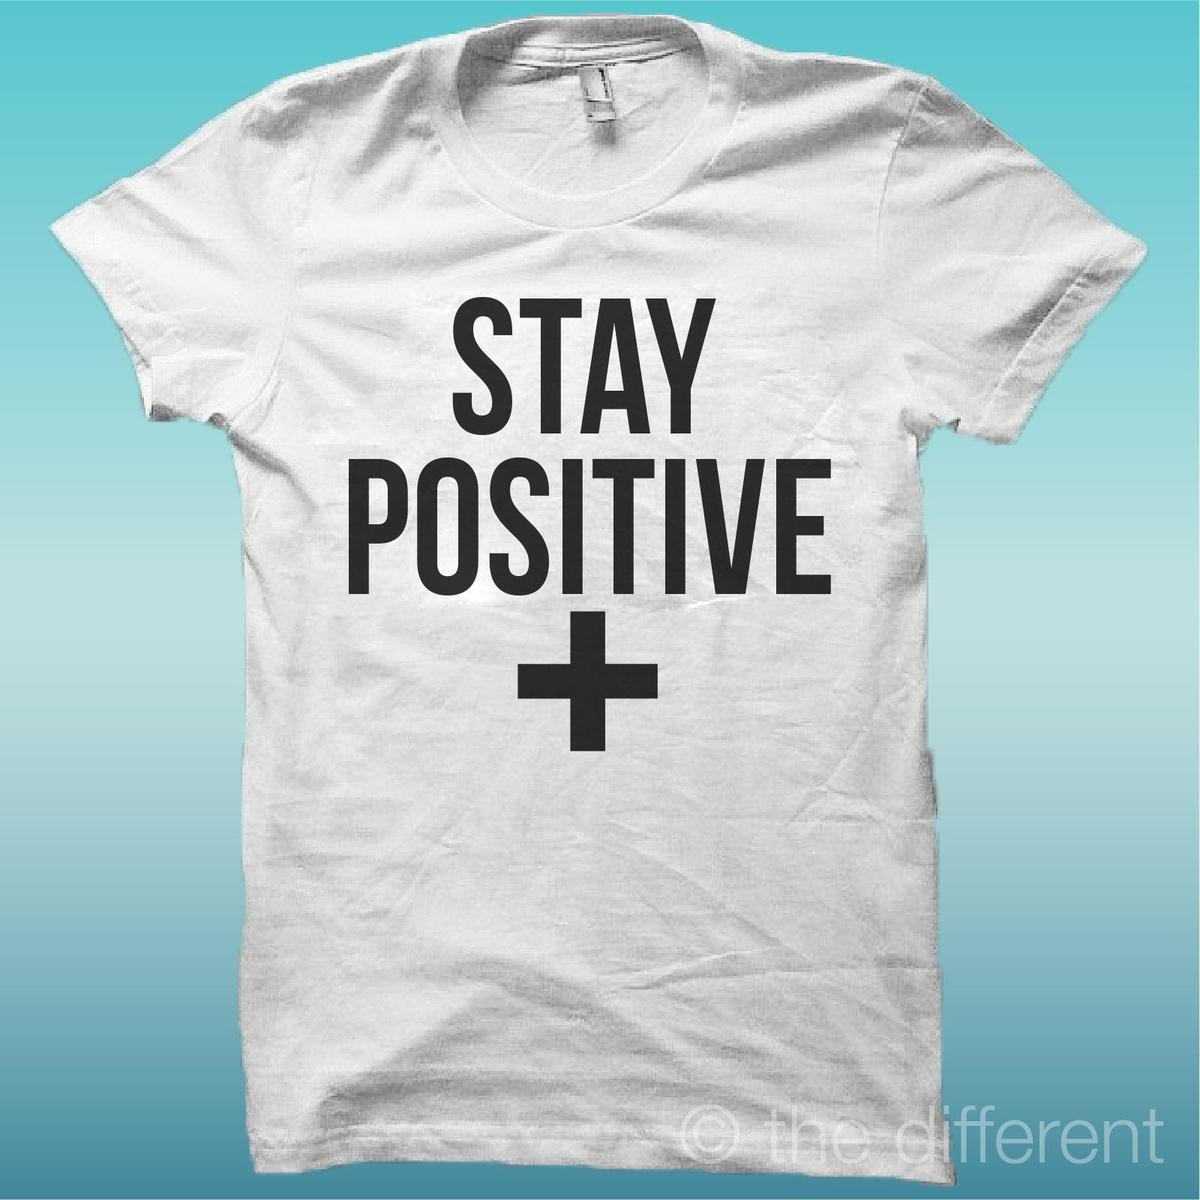 "CAMISETA HOMBRE "" ESTANCIA POSITIVA "" IDEA ROAD SLAVE TO THE RHYTHM HAPPINESS 2018 New Fashion Brand Men tees"